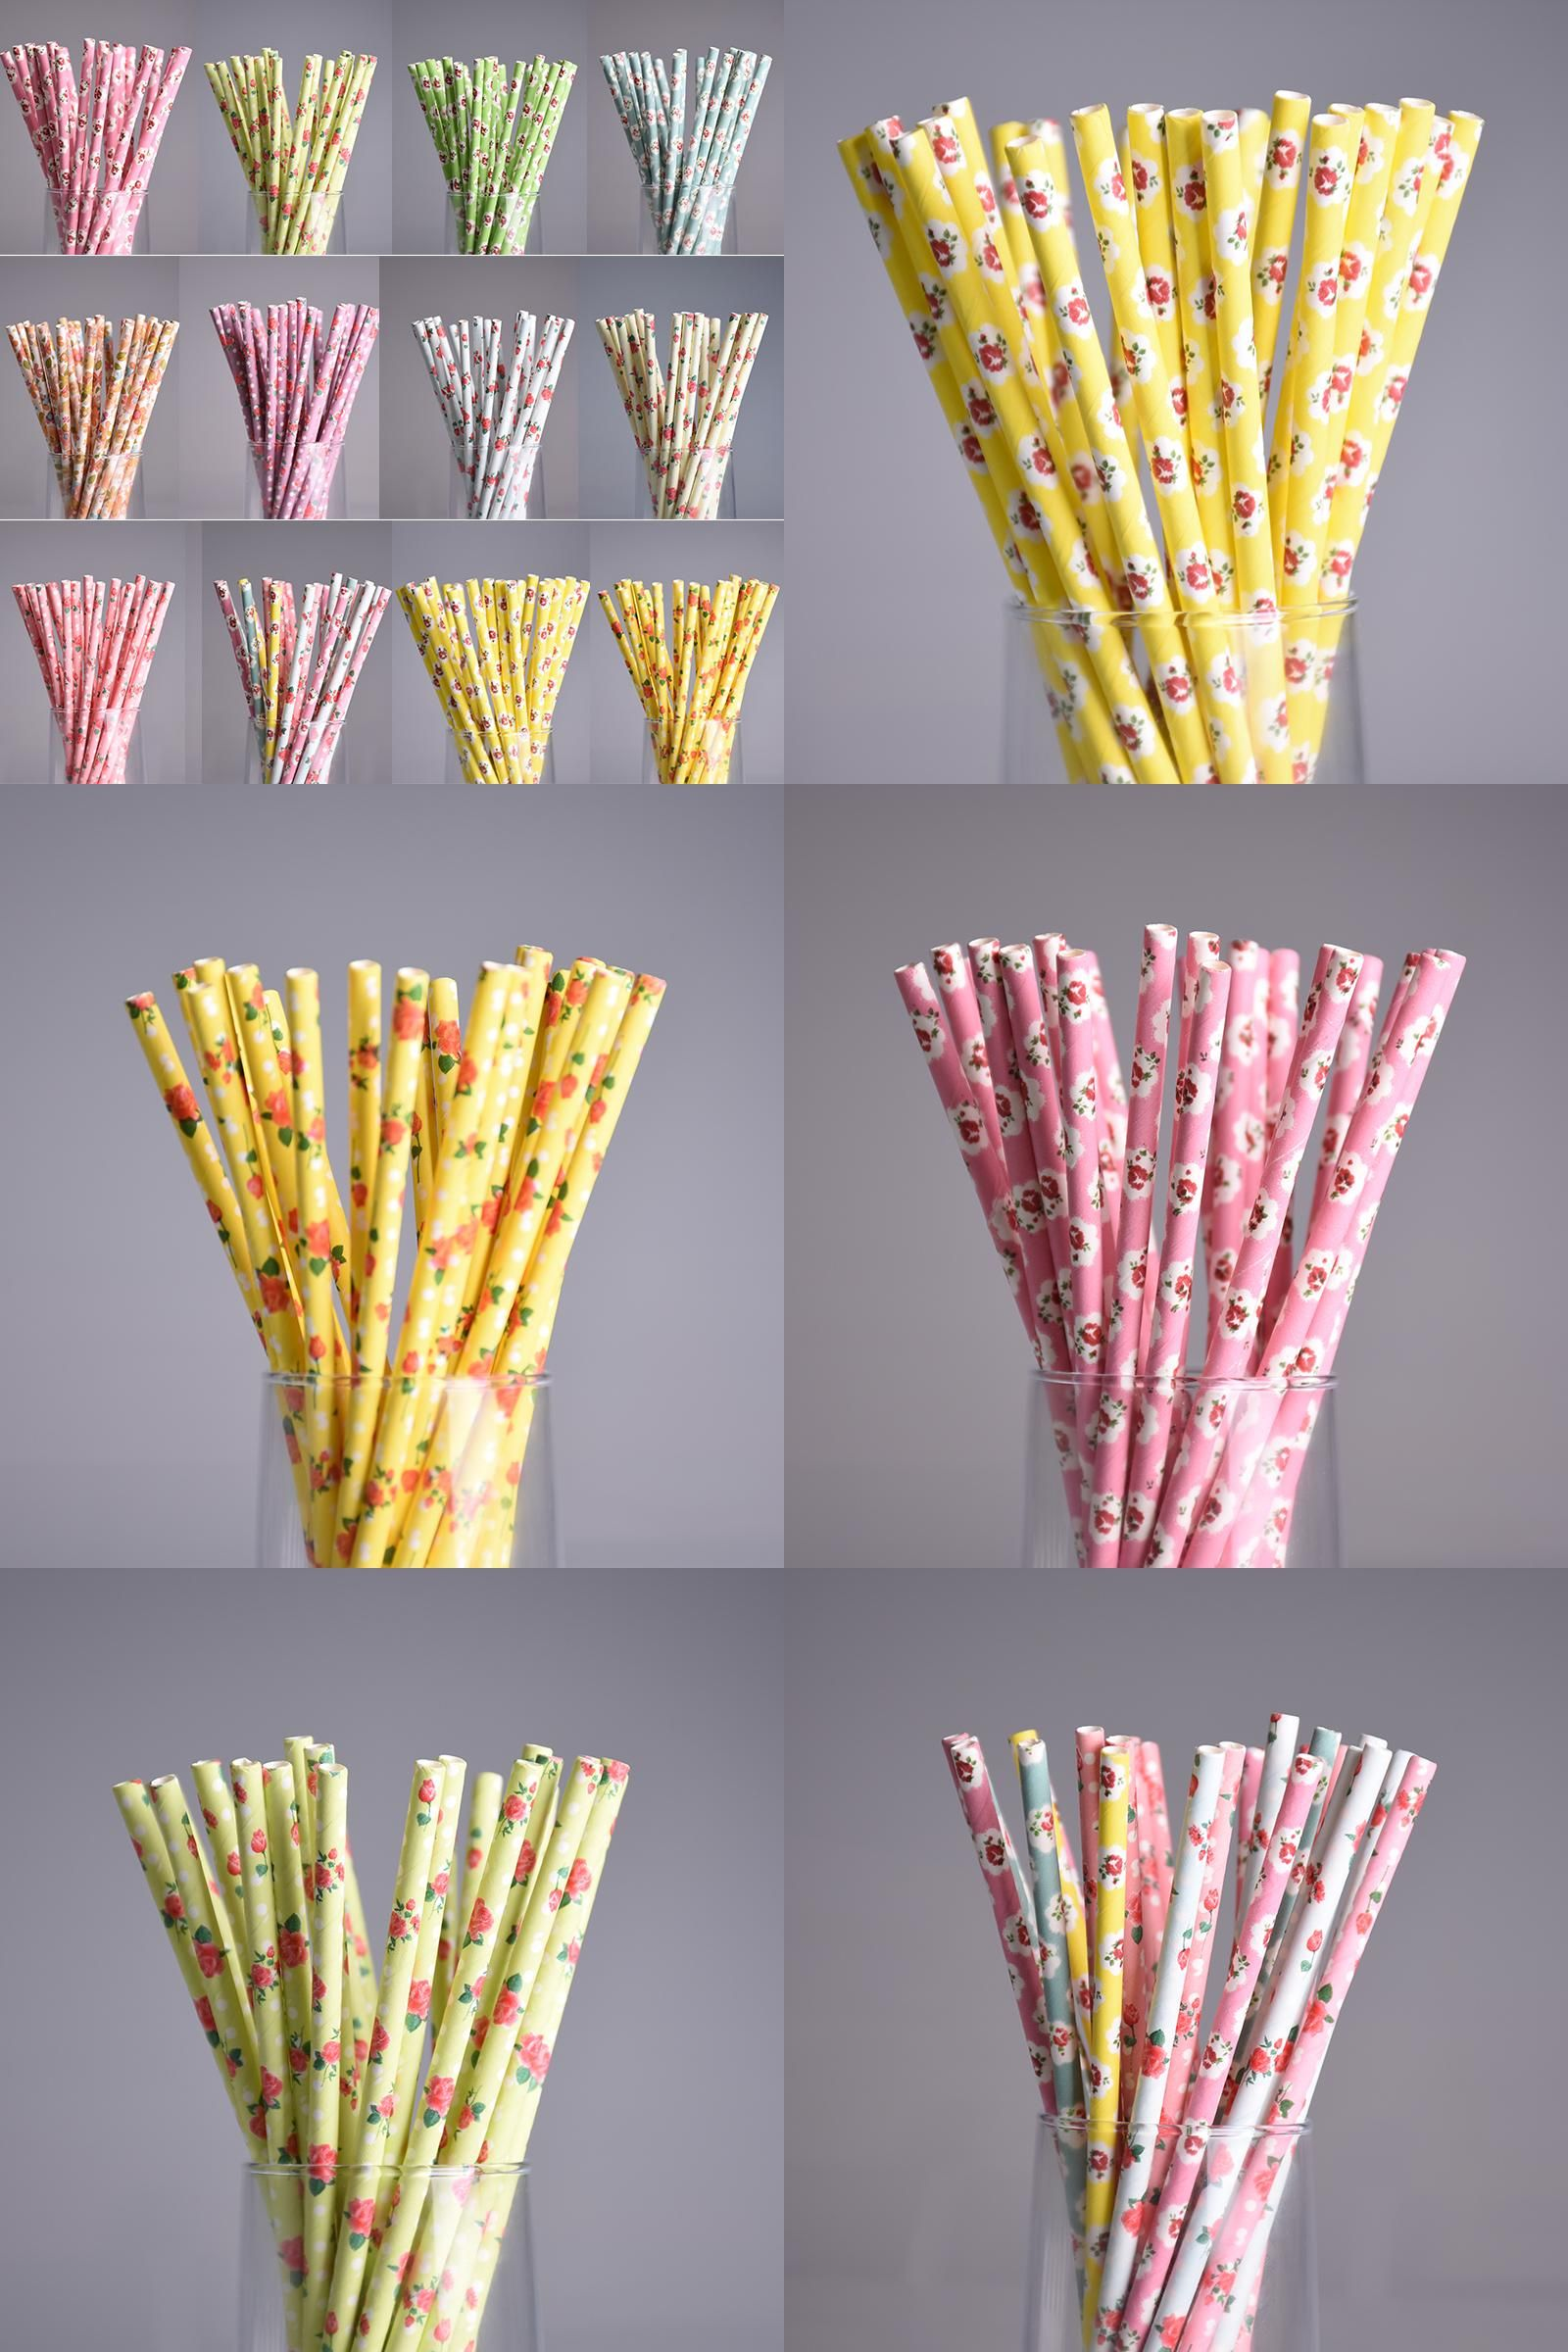 [Visit to Buy] New 50pcs/lot Colorful Drinking Paper Straws For Kids Wedding Birthday Party drinking Prom Straws Vintage Retro Floral Tubes #Advertisement